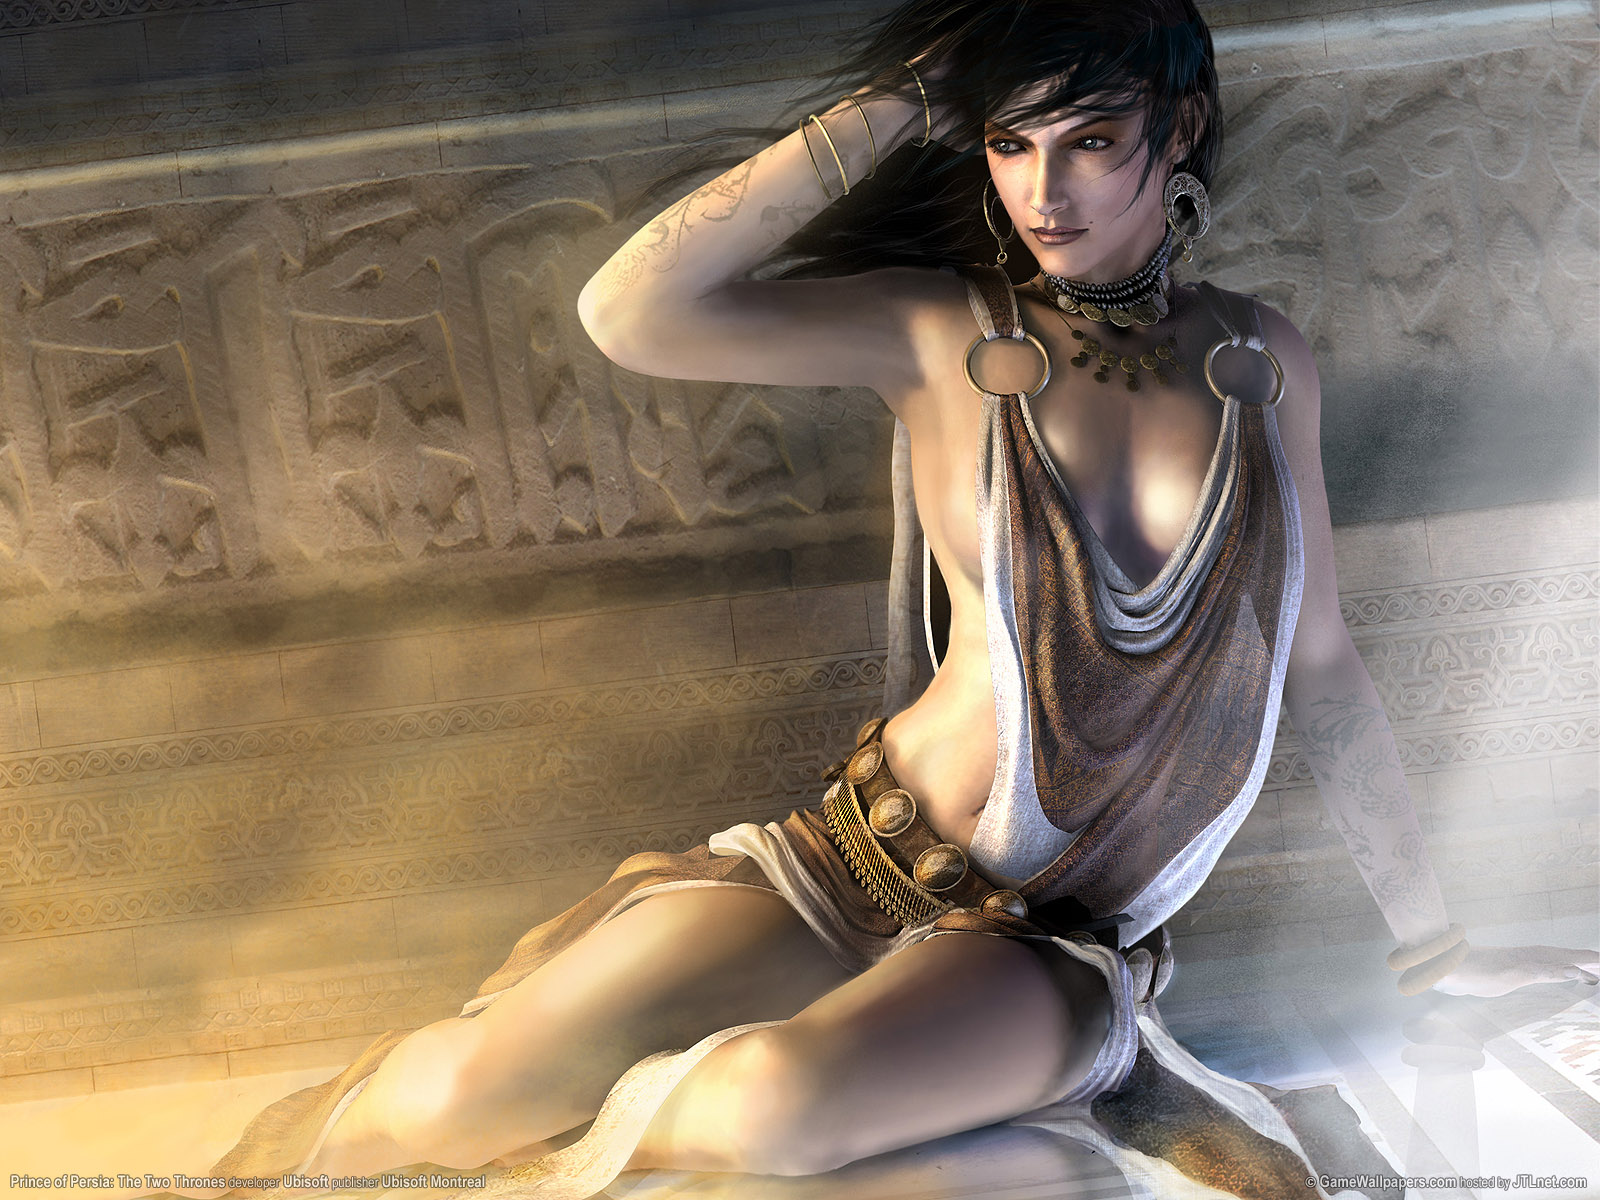 Sexy girl prince of persia pic adult pink wemen